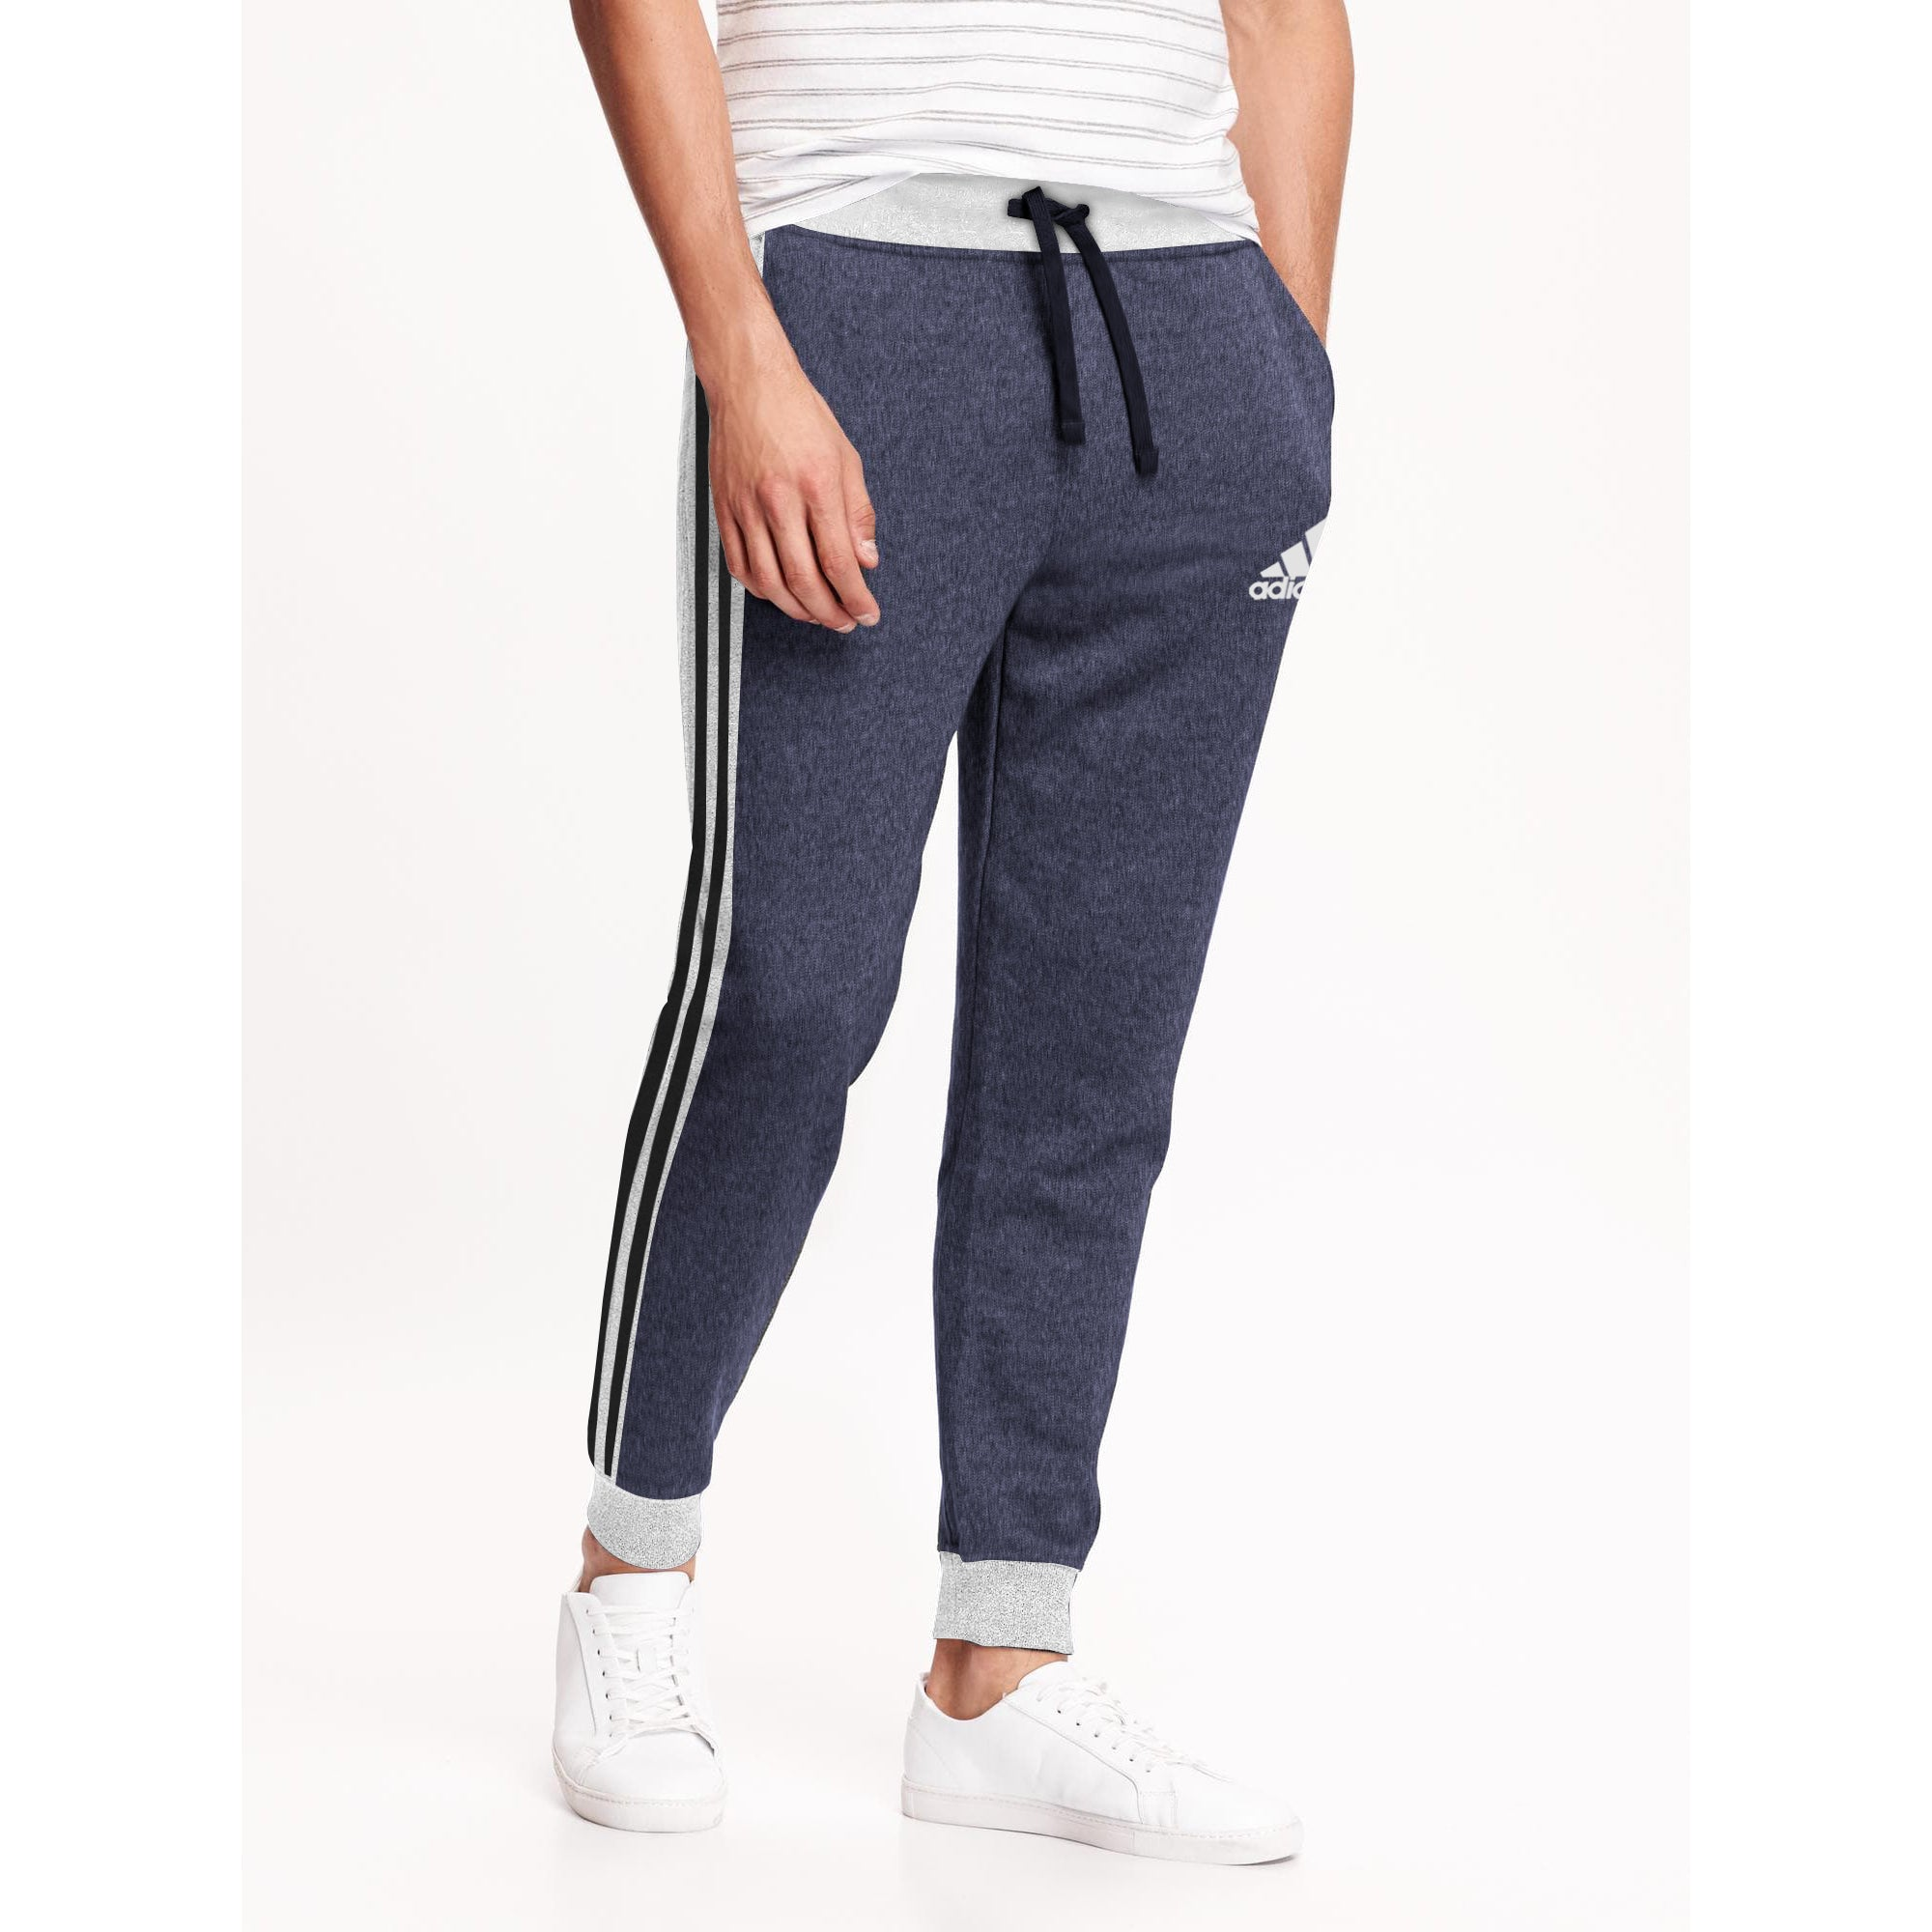 Adidas Single Jersey Slim Fit Jogger Trouser For Men-Purple Melange With Grey Melange & Black Stripe-BE8846